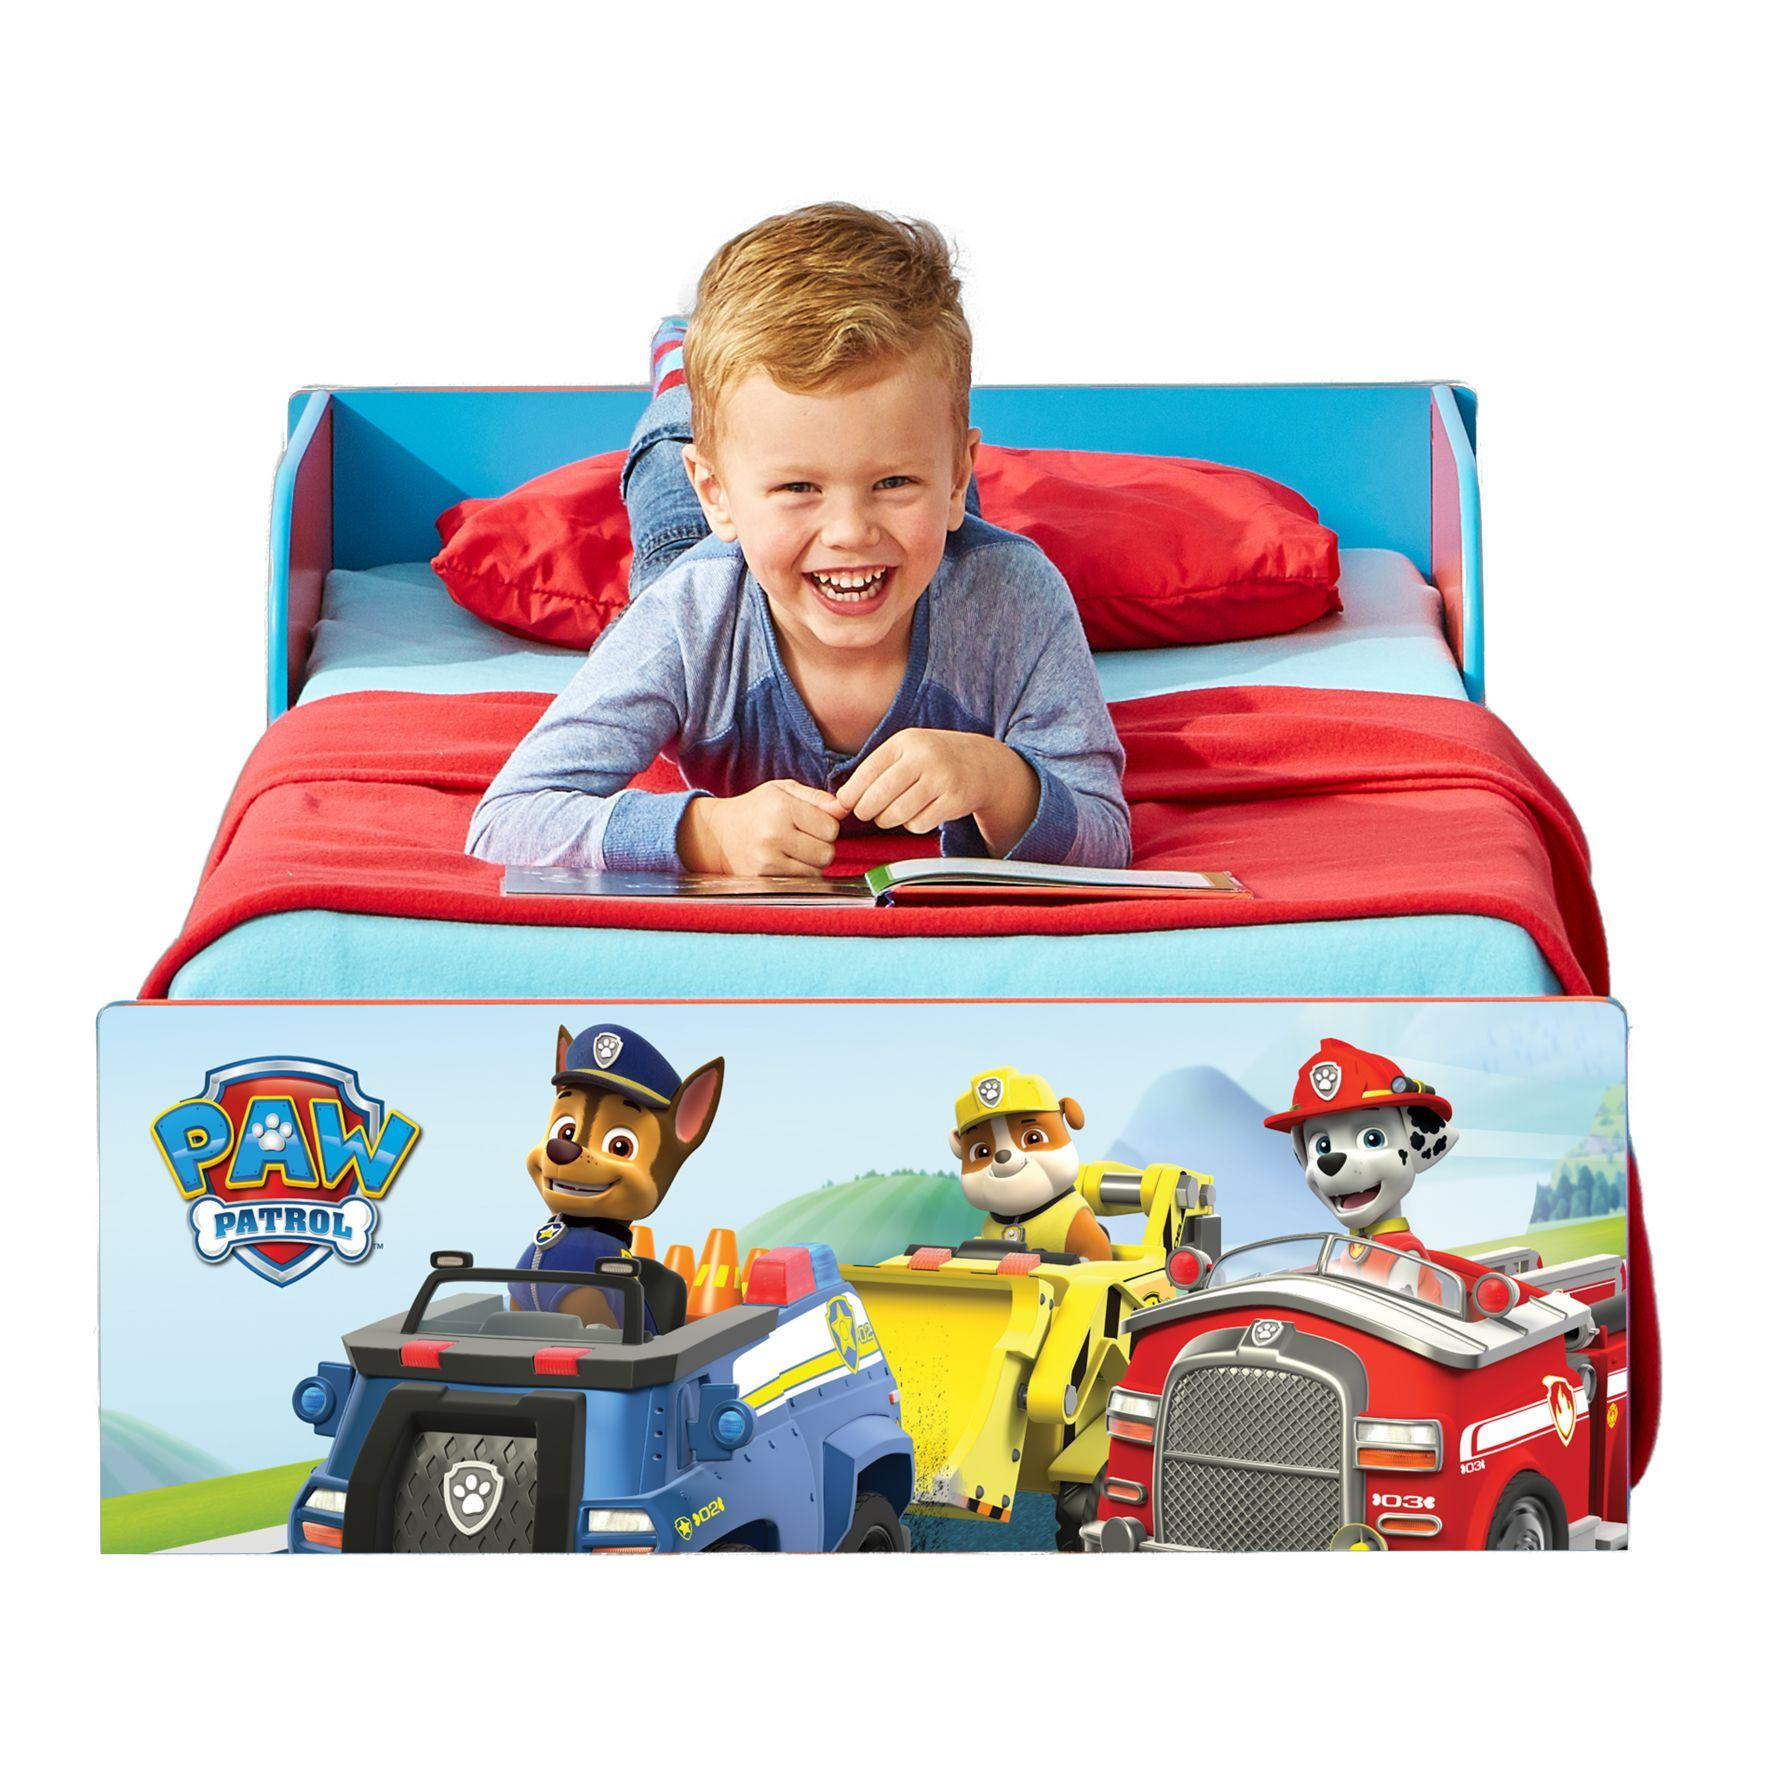 paw patrol toddler bed instructions